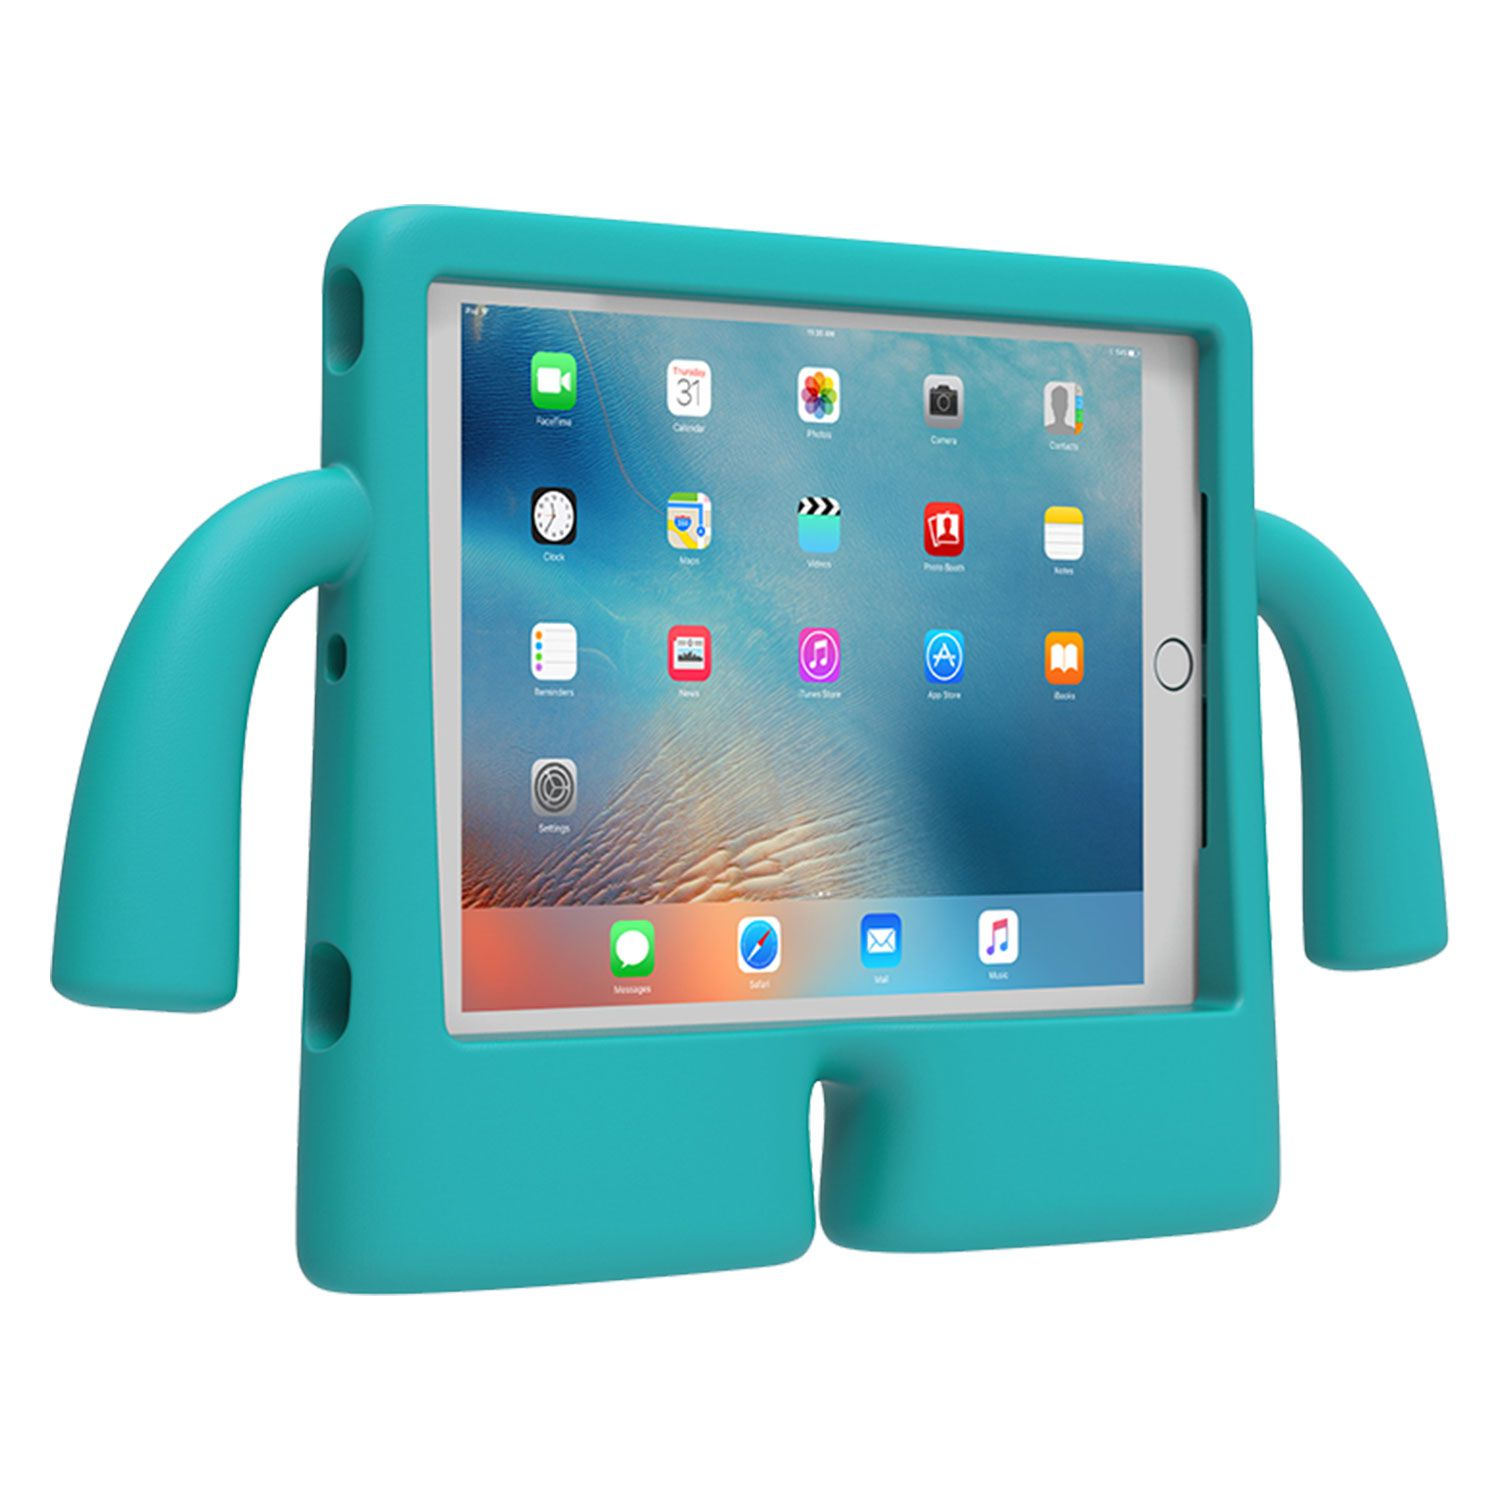 7 Best iPad Cases for Kids - Avoid Repair Costs